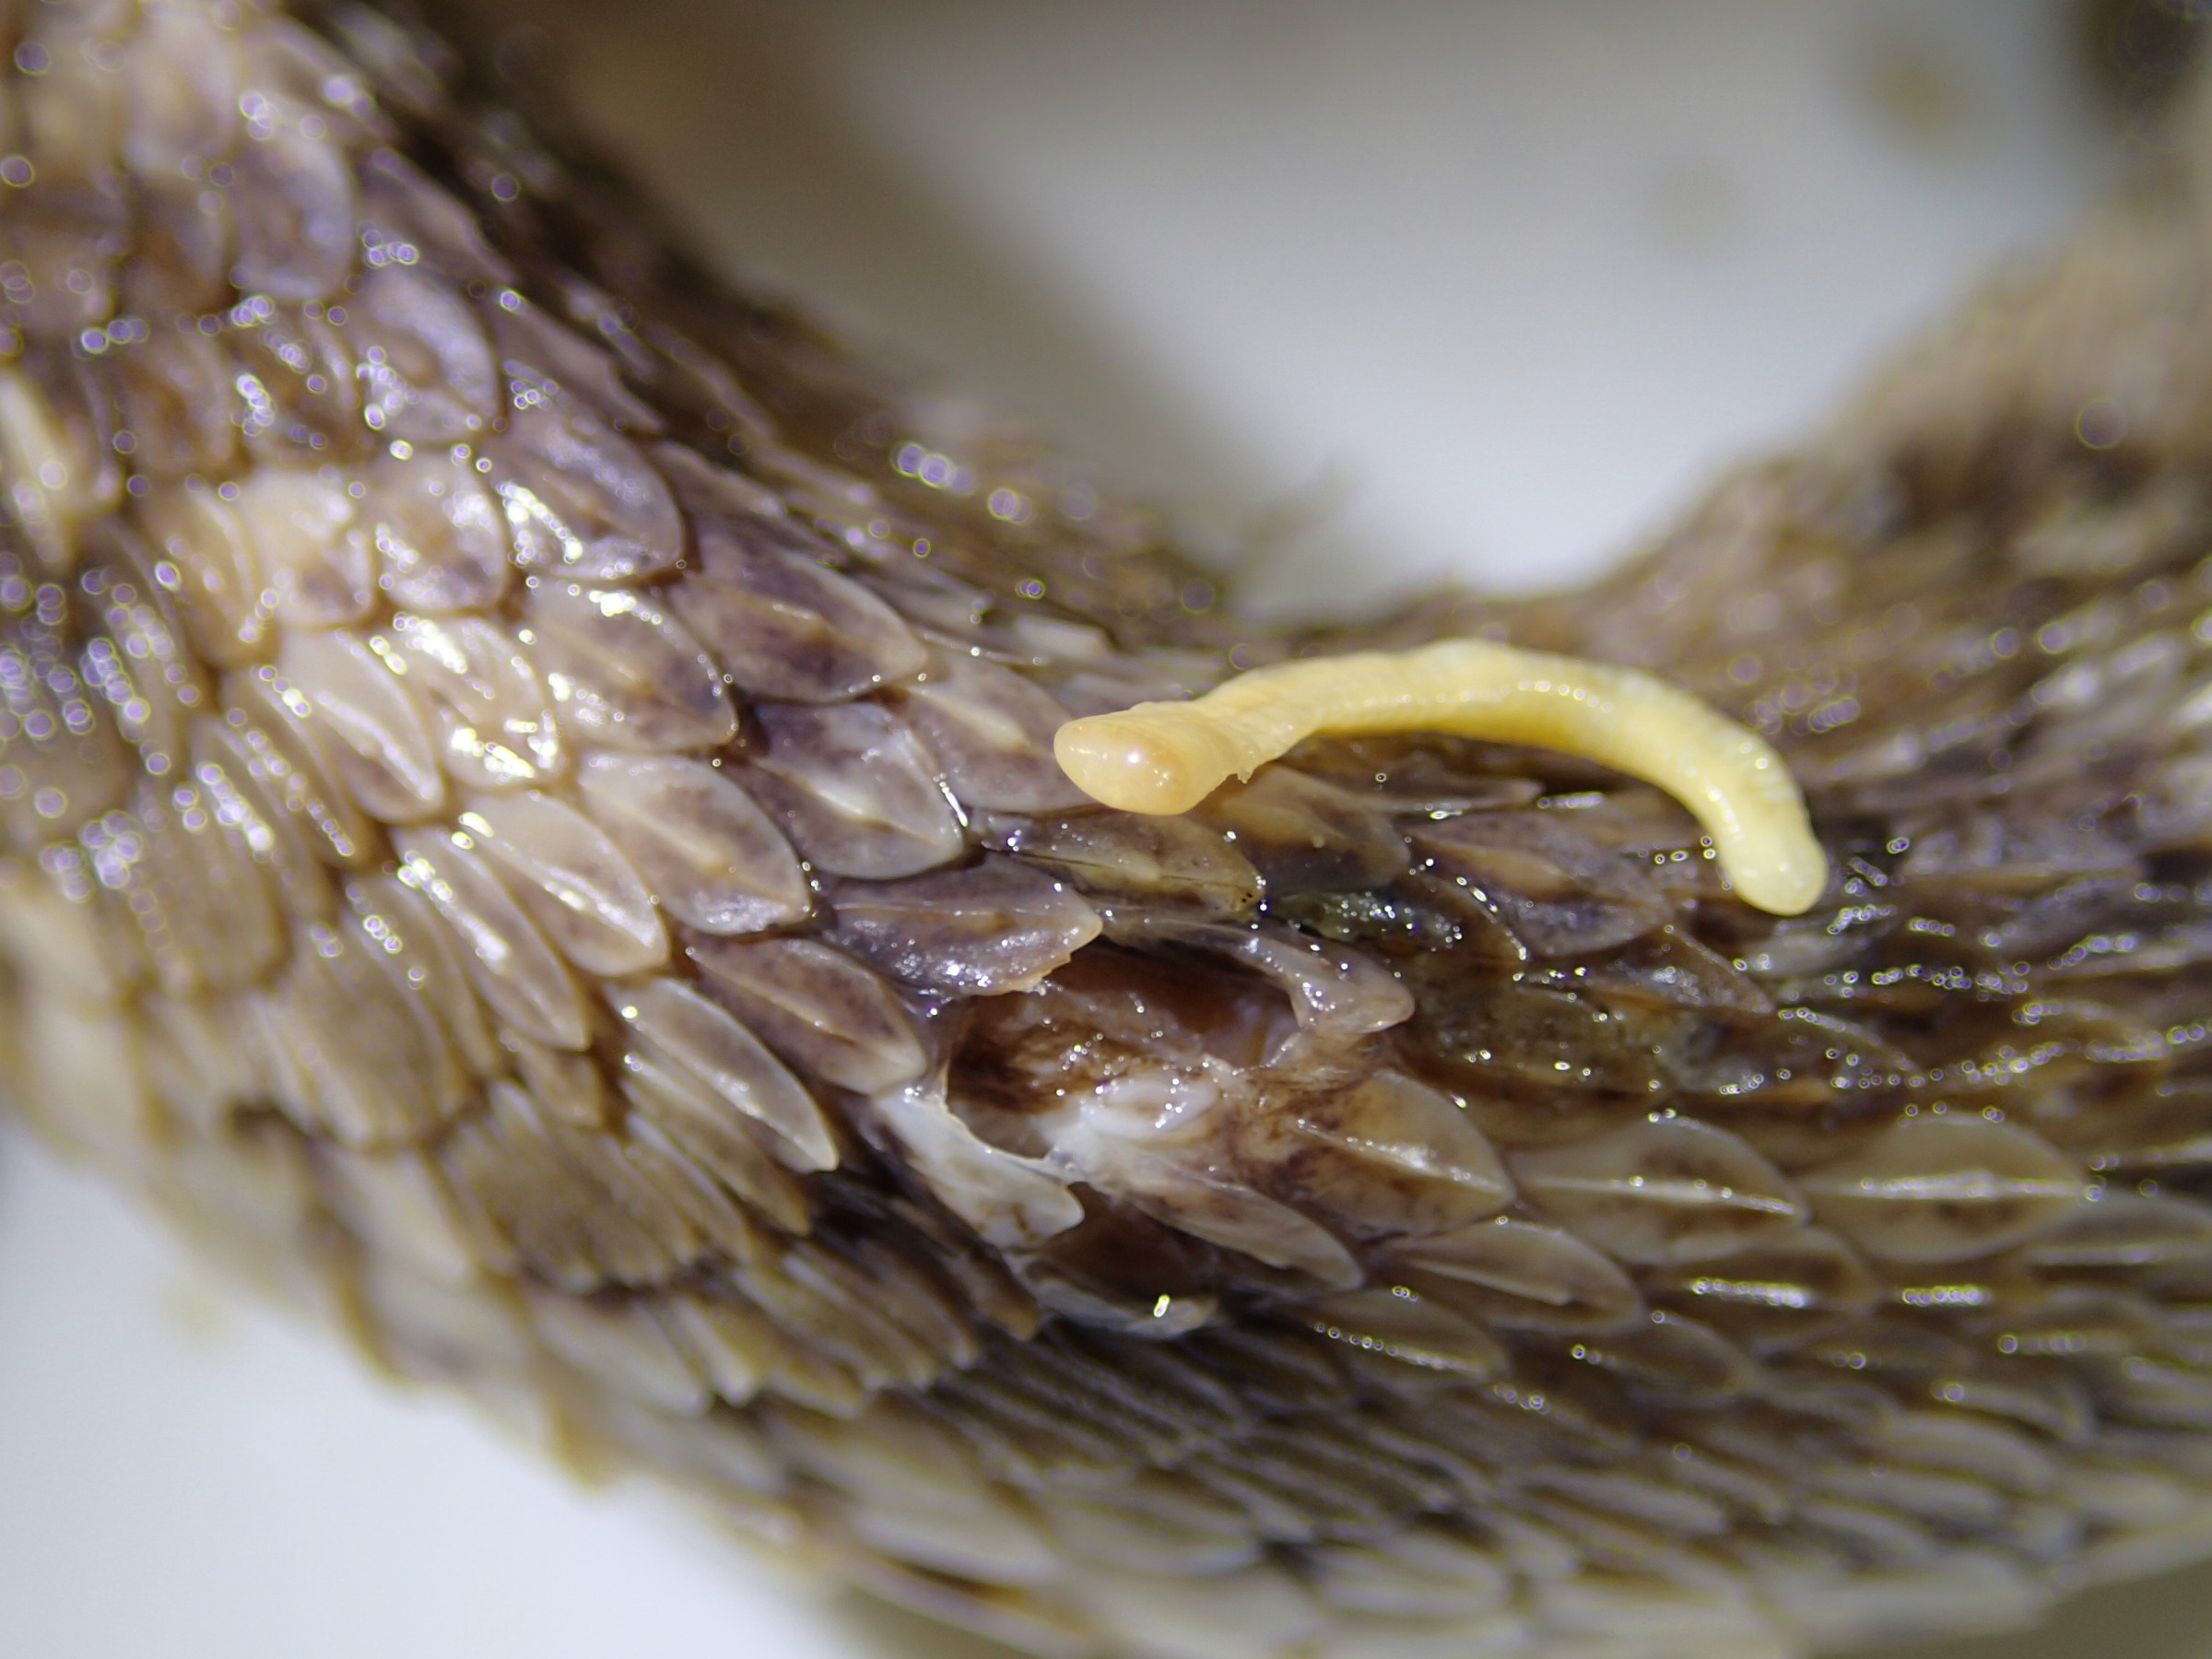 Image of African Saw-scaled Viper